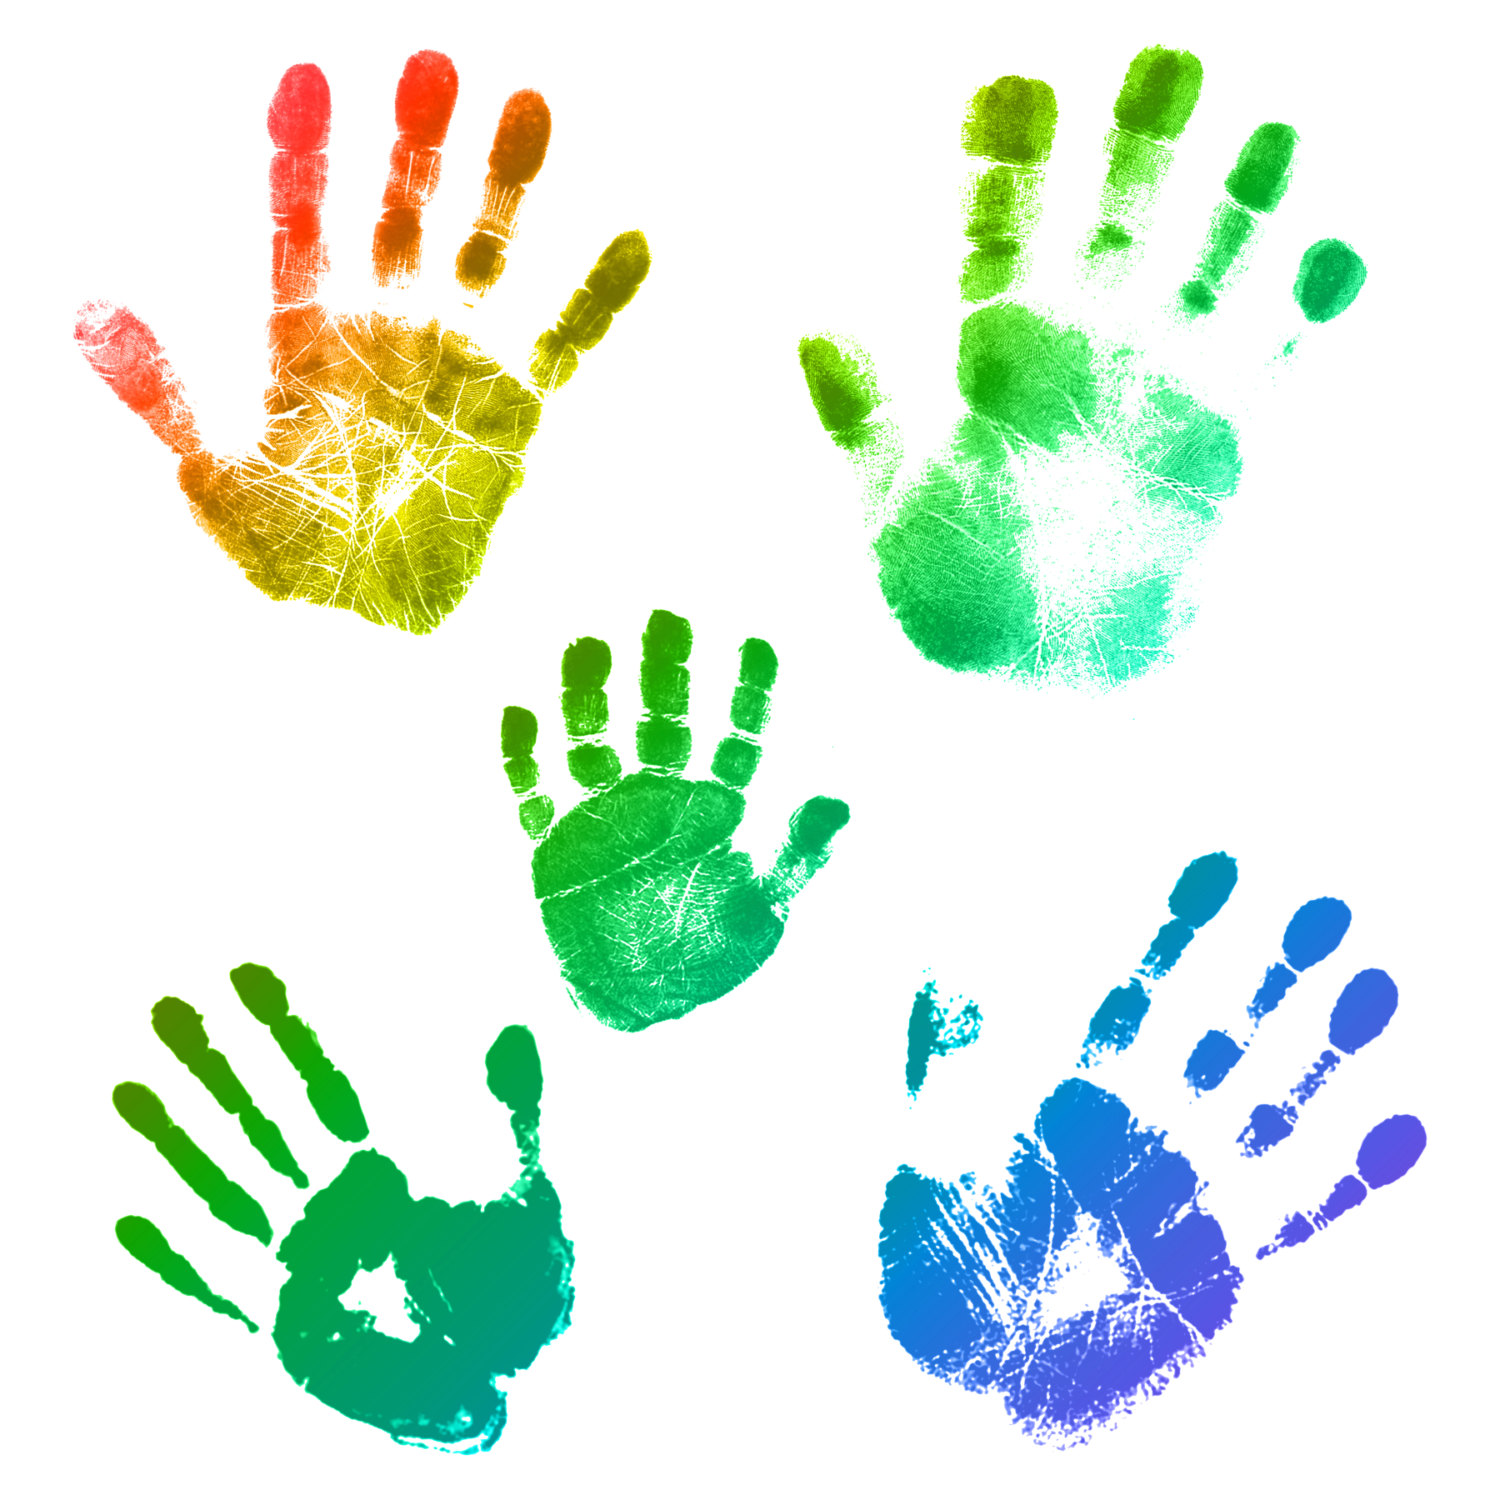 Handprint clipart together  Download Commercial Brushes Use